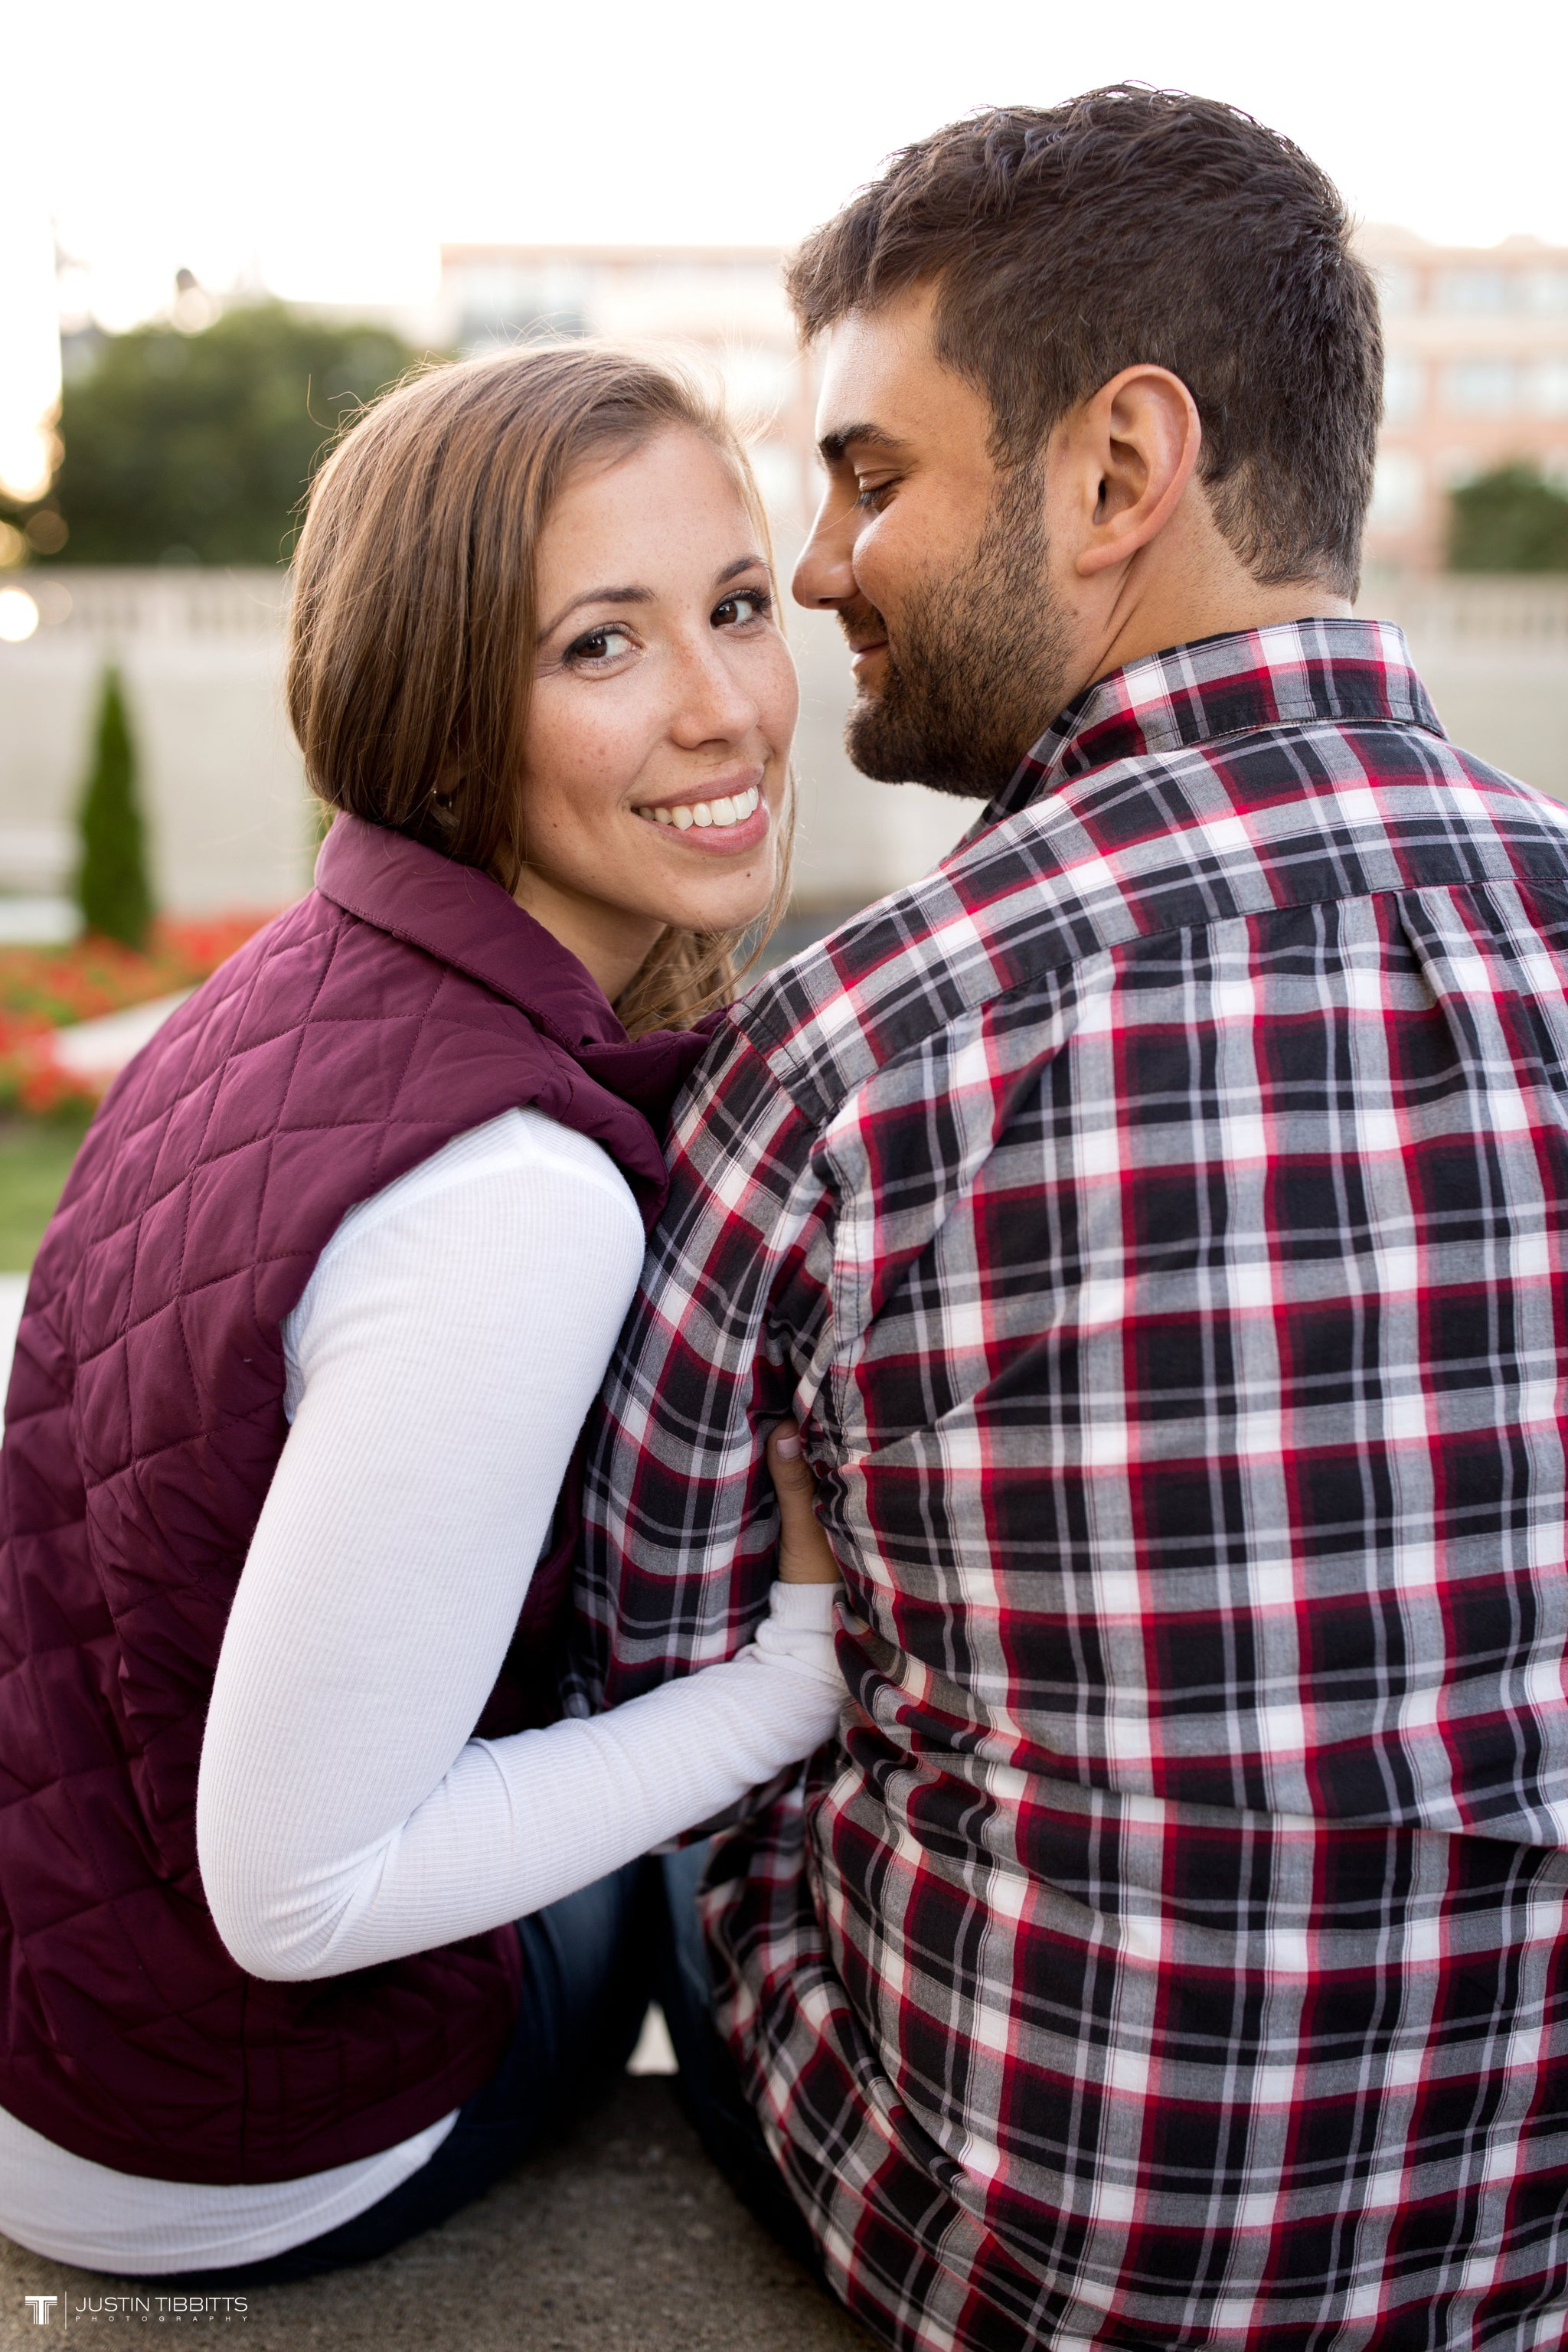 saratoga-springs-ny-engagement-shoot-with-nick-and-ciara_0026